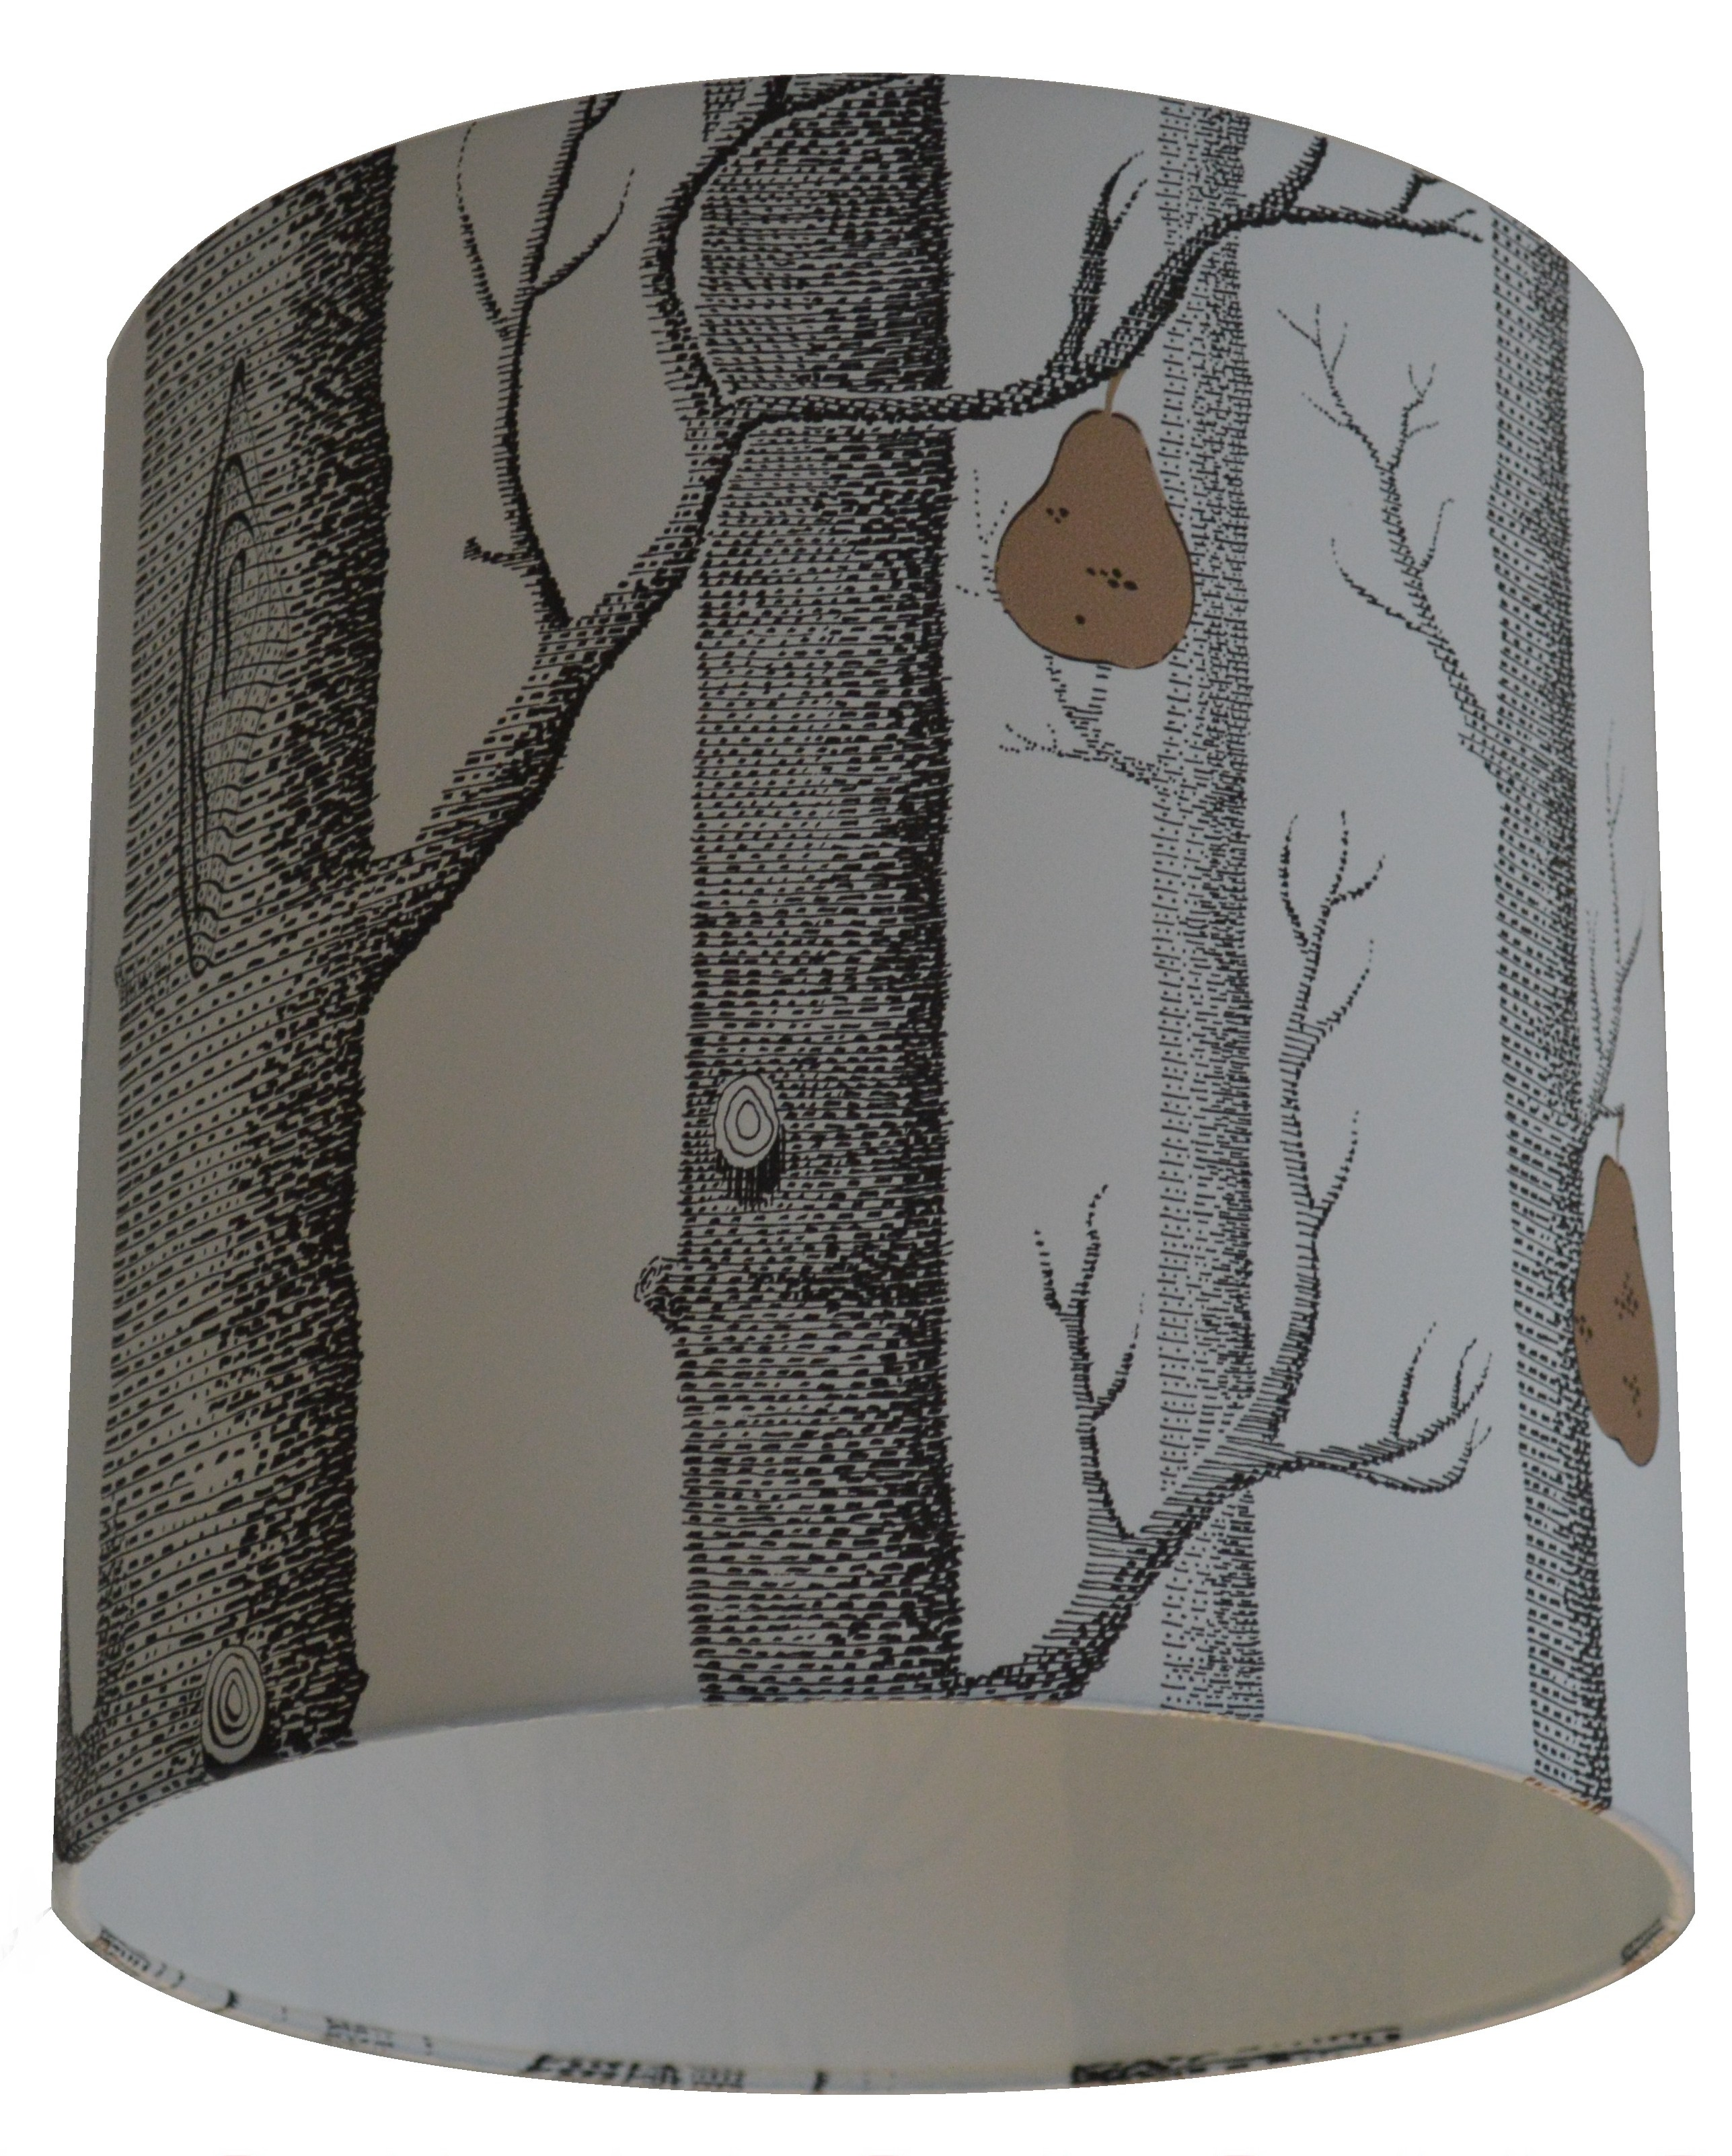 Cole And Son Woods cole & son woods and pears wallpaper lampshade